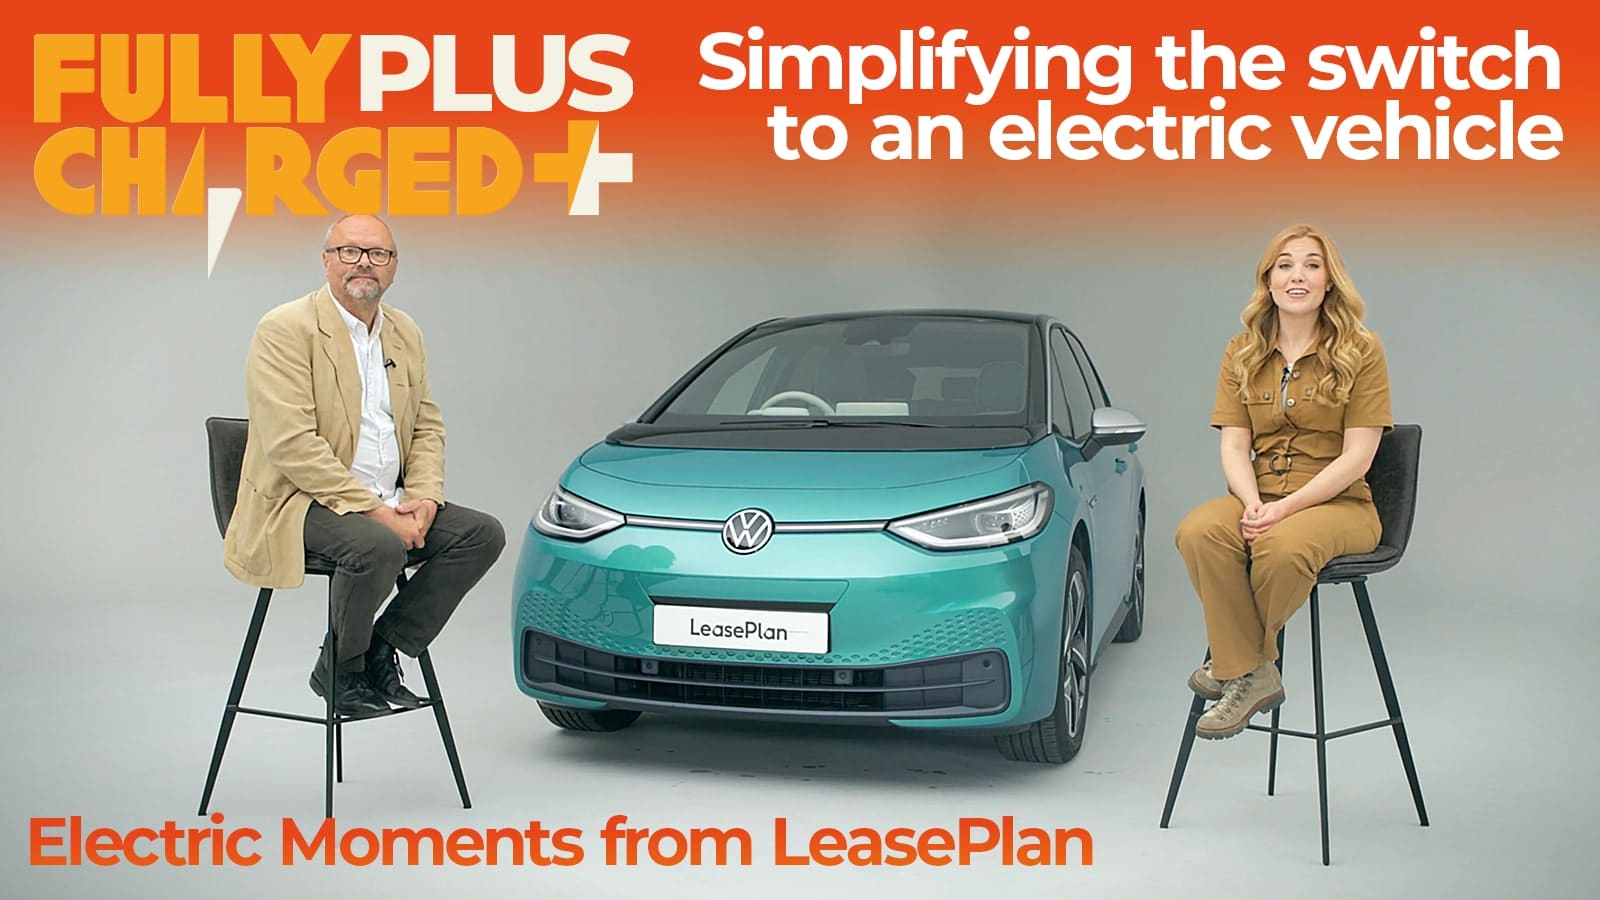 LeasePlan Electric Moments - Episode One - Simplifying the switch to an electric vehicle